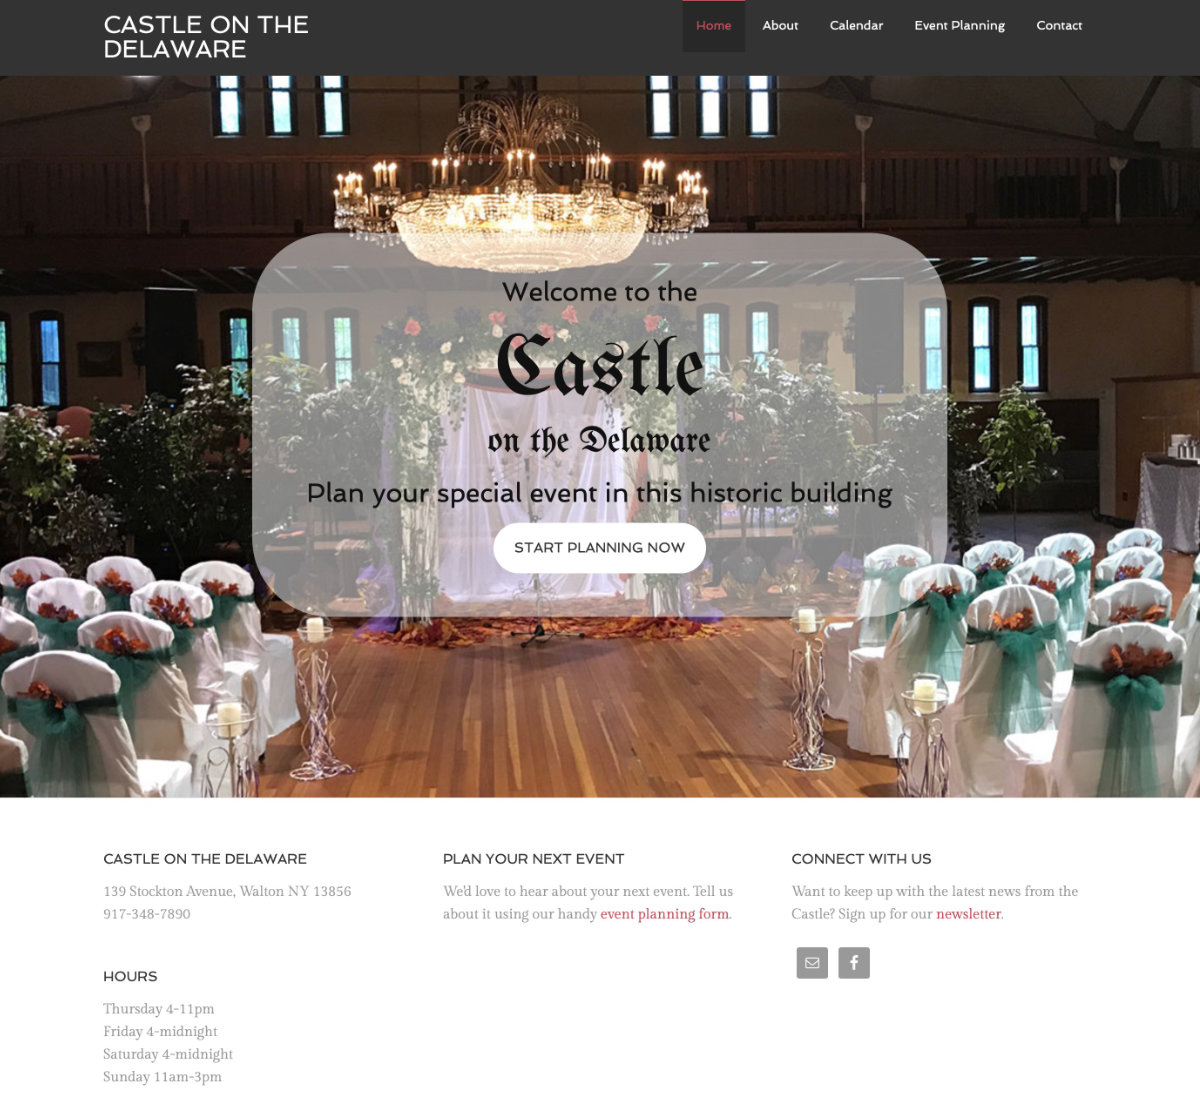 An event website for the unique venue known as Castle on the Delaware, previously an armory in Walton NY.  Visit website castleonthedelaware.com